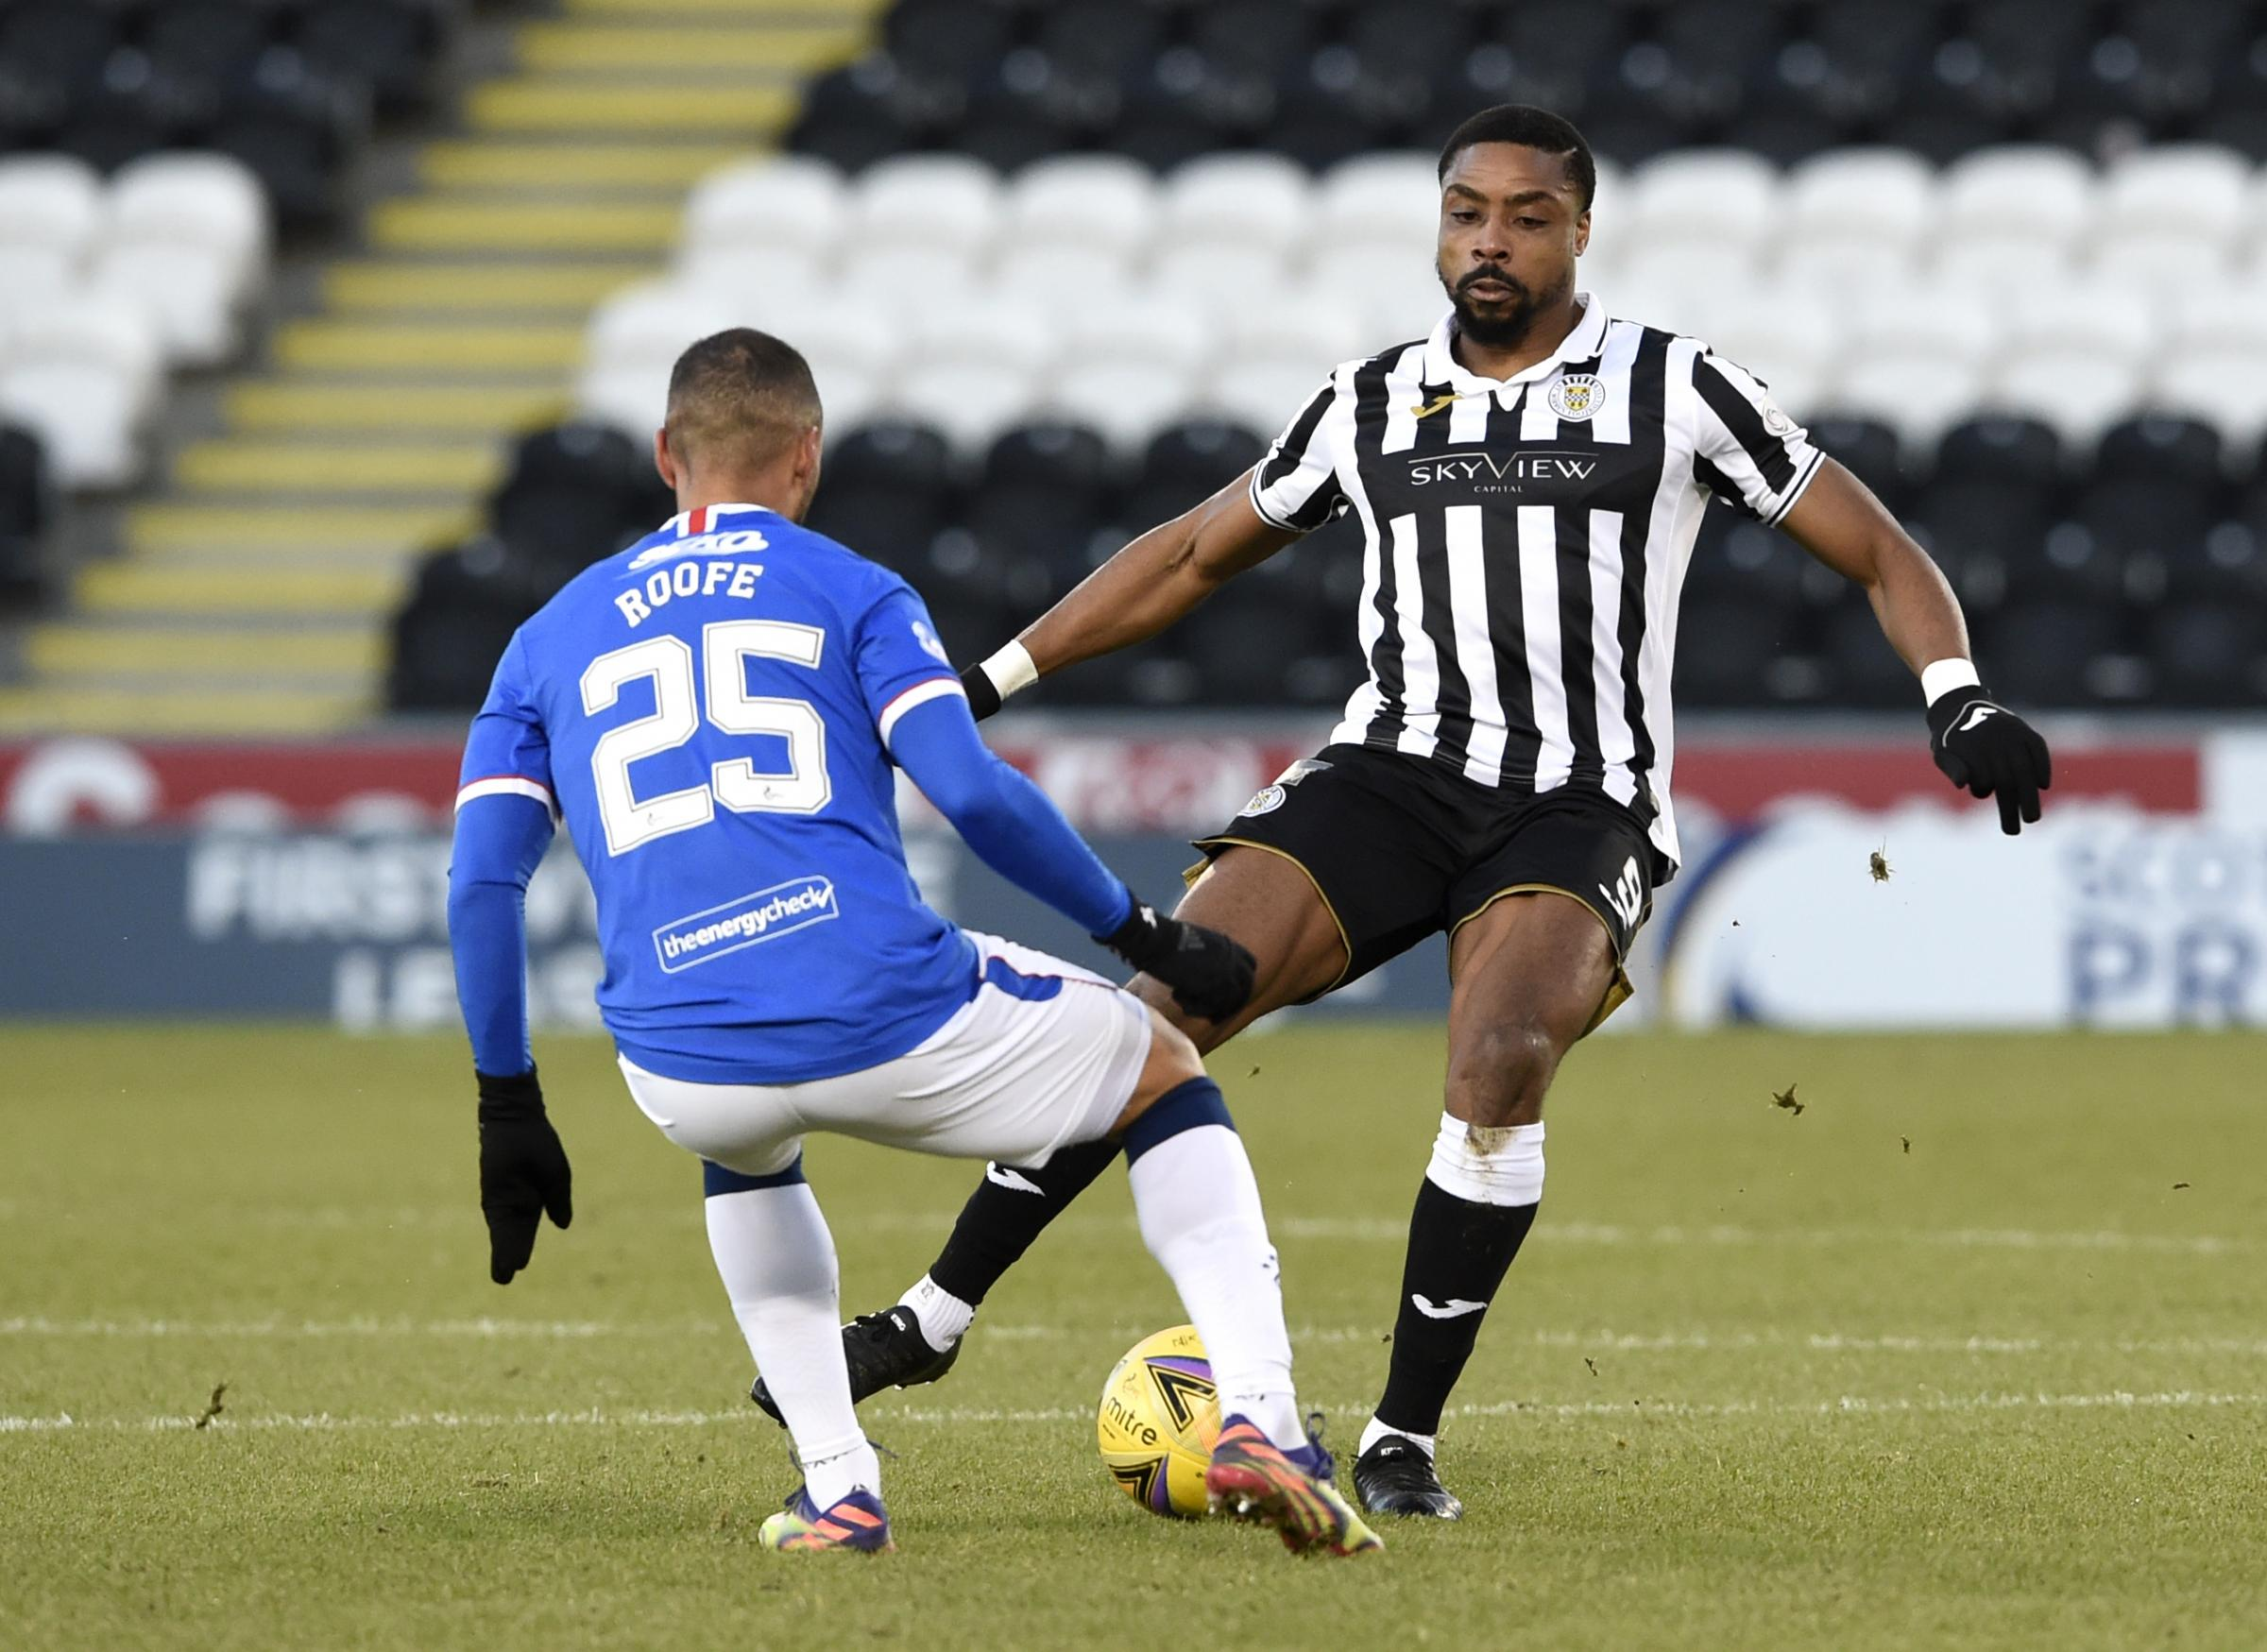 St Mirren players rated as they fall to defeat against league leaders Rangers